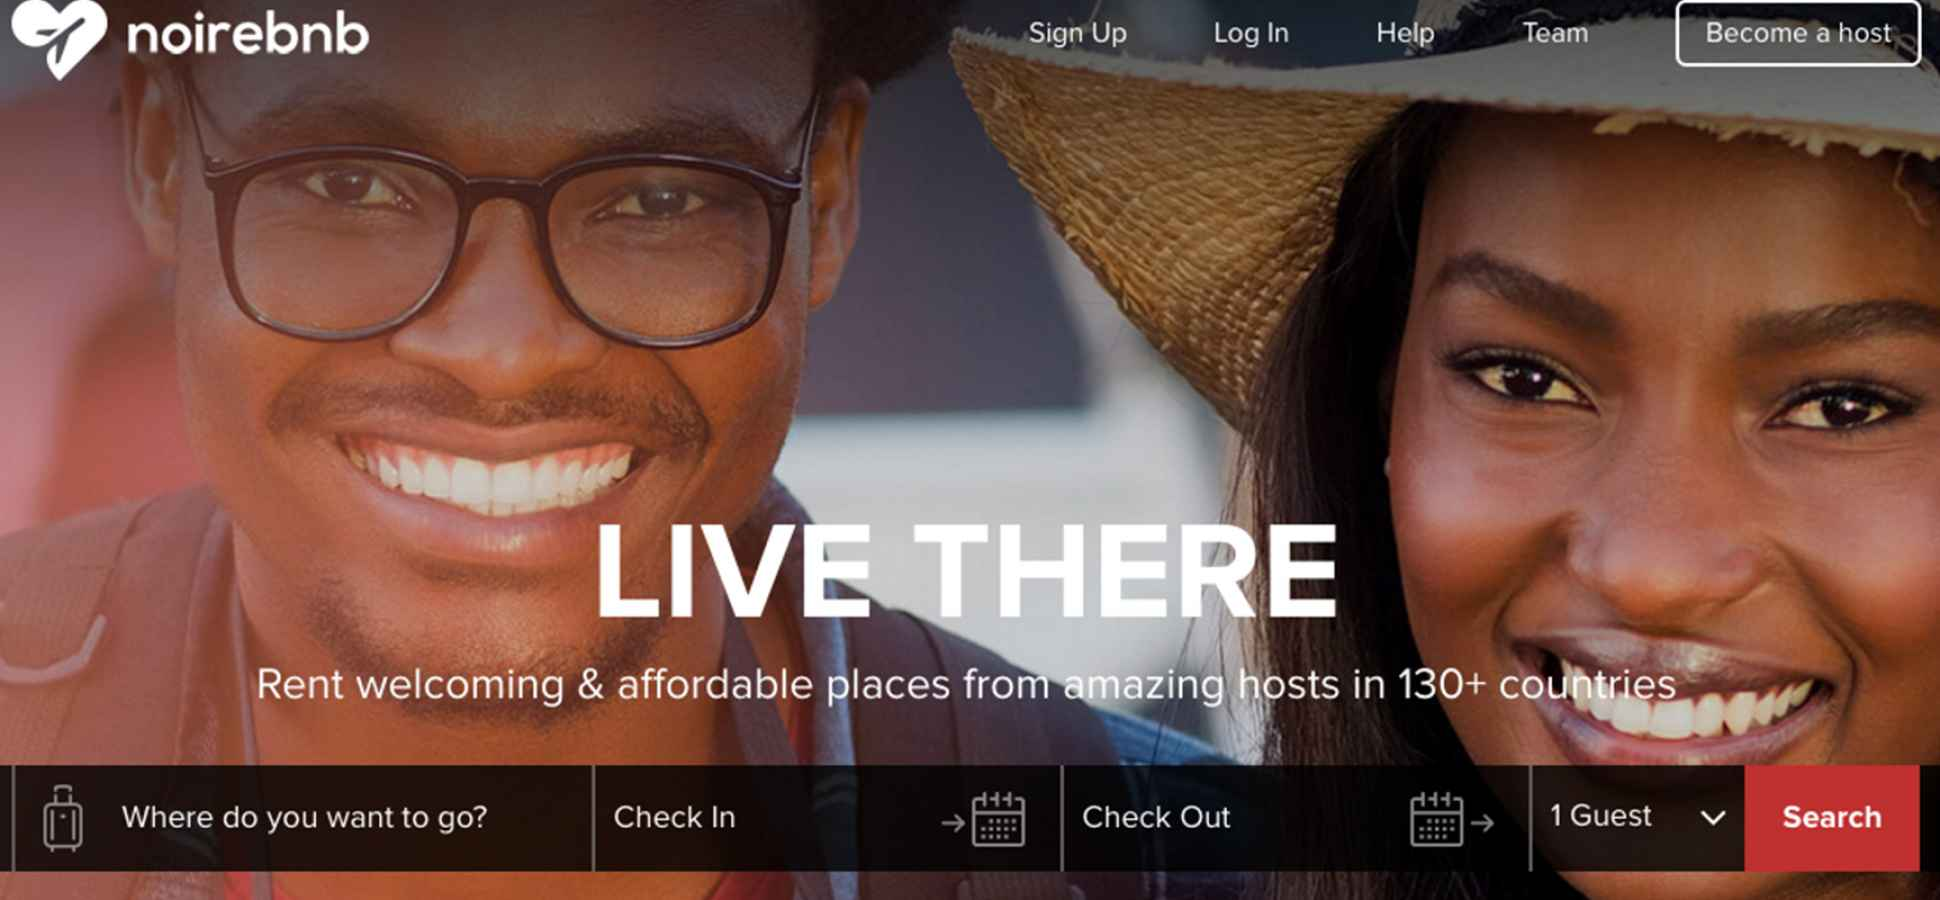 Two Startups Launch To Tackle Discrimination on Airbnb